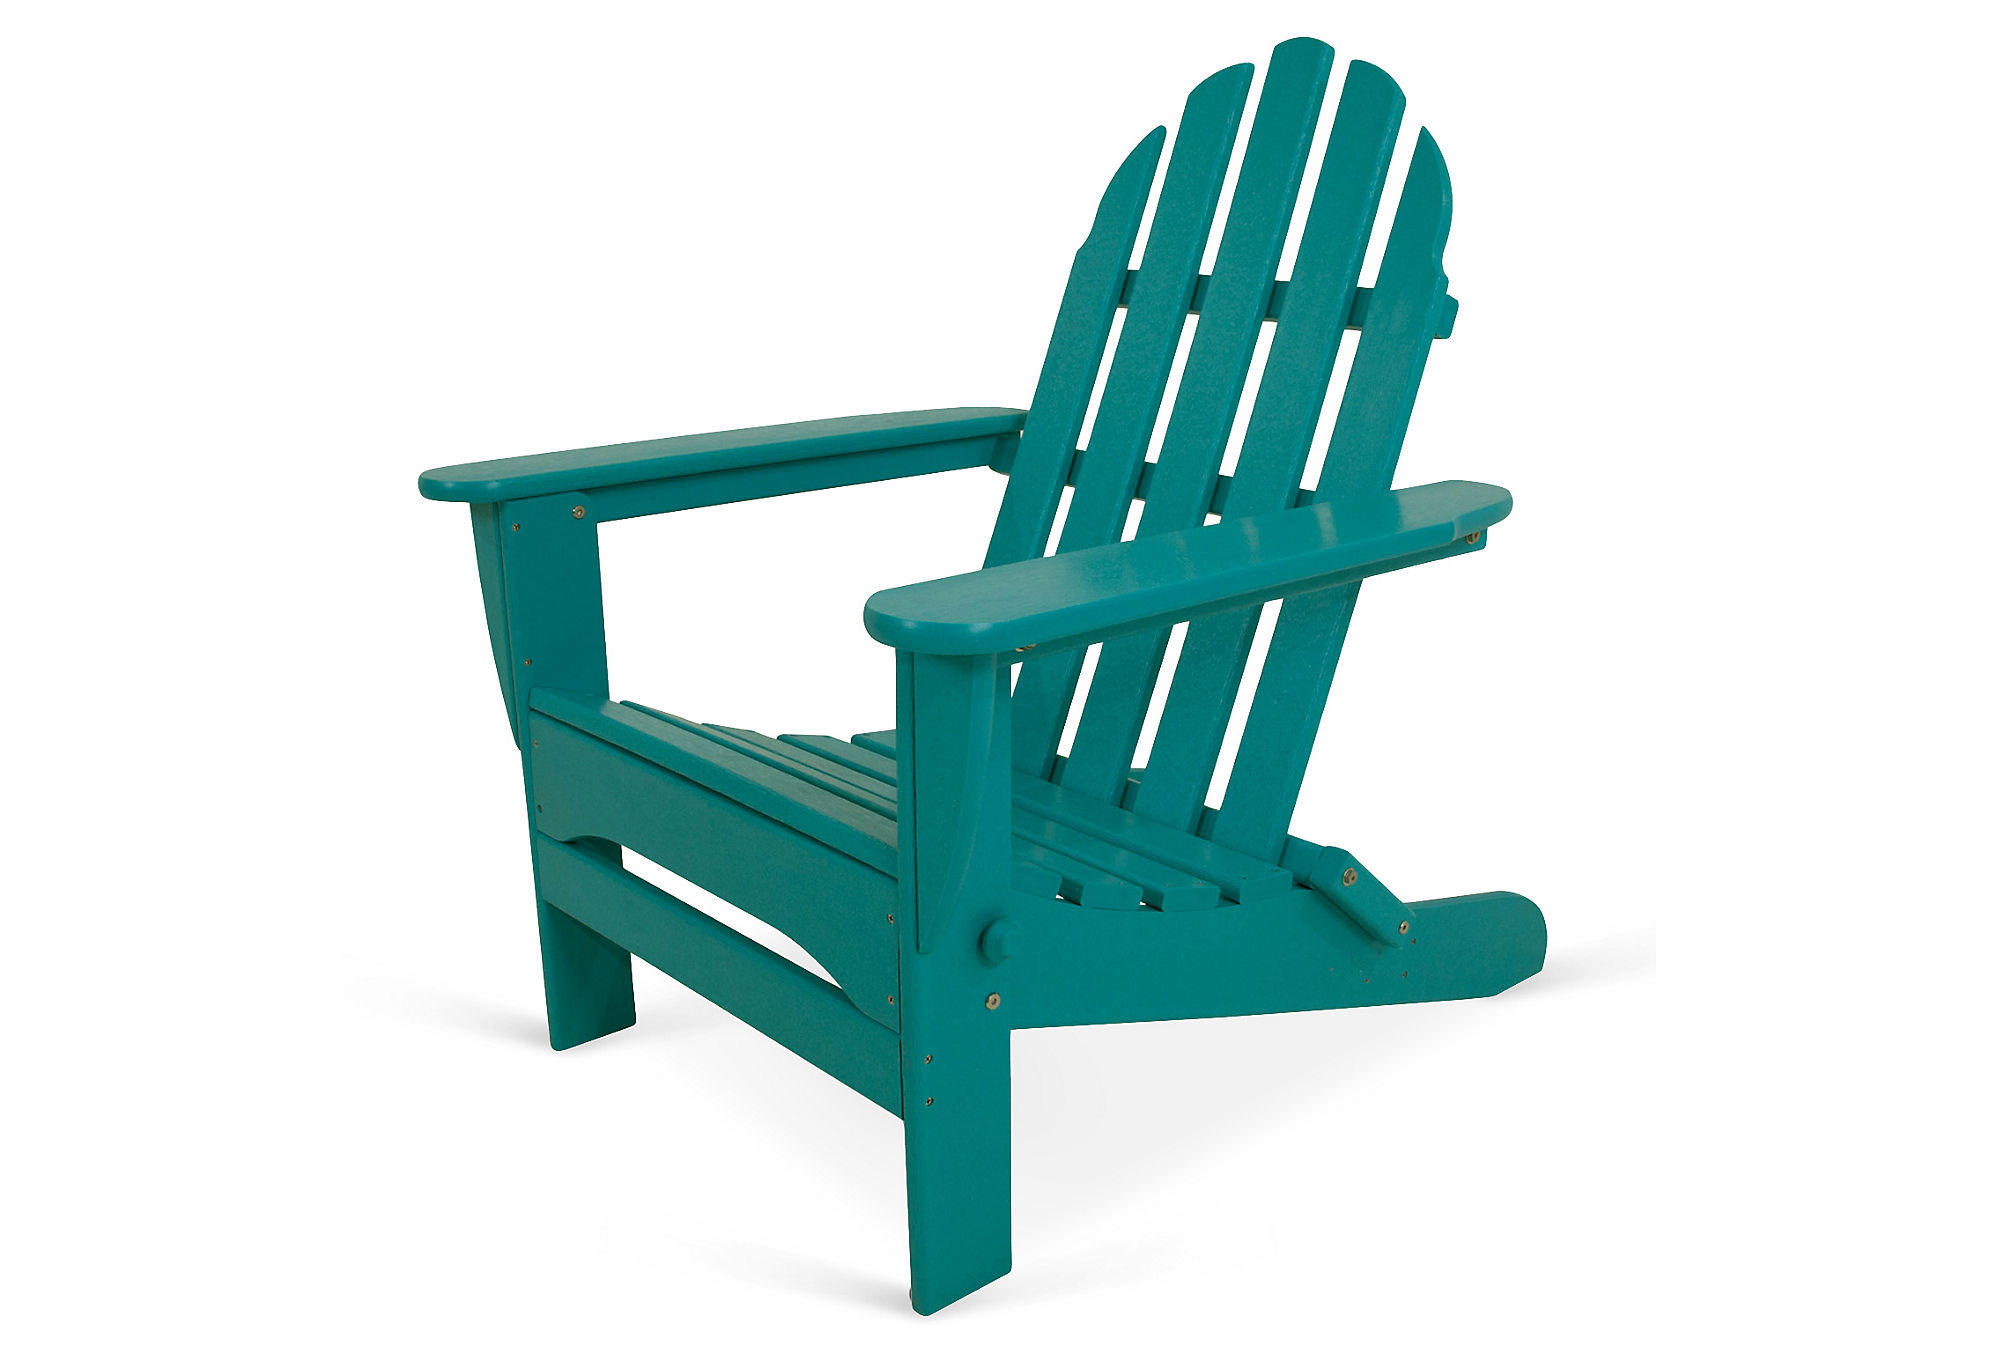 Teal Adirondack Chairs Classic Folding Adirondack Teal Outdoor From One Kings Lane